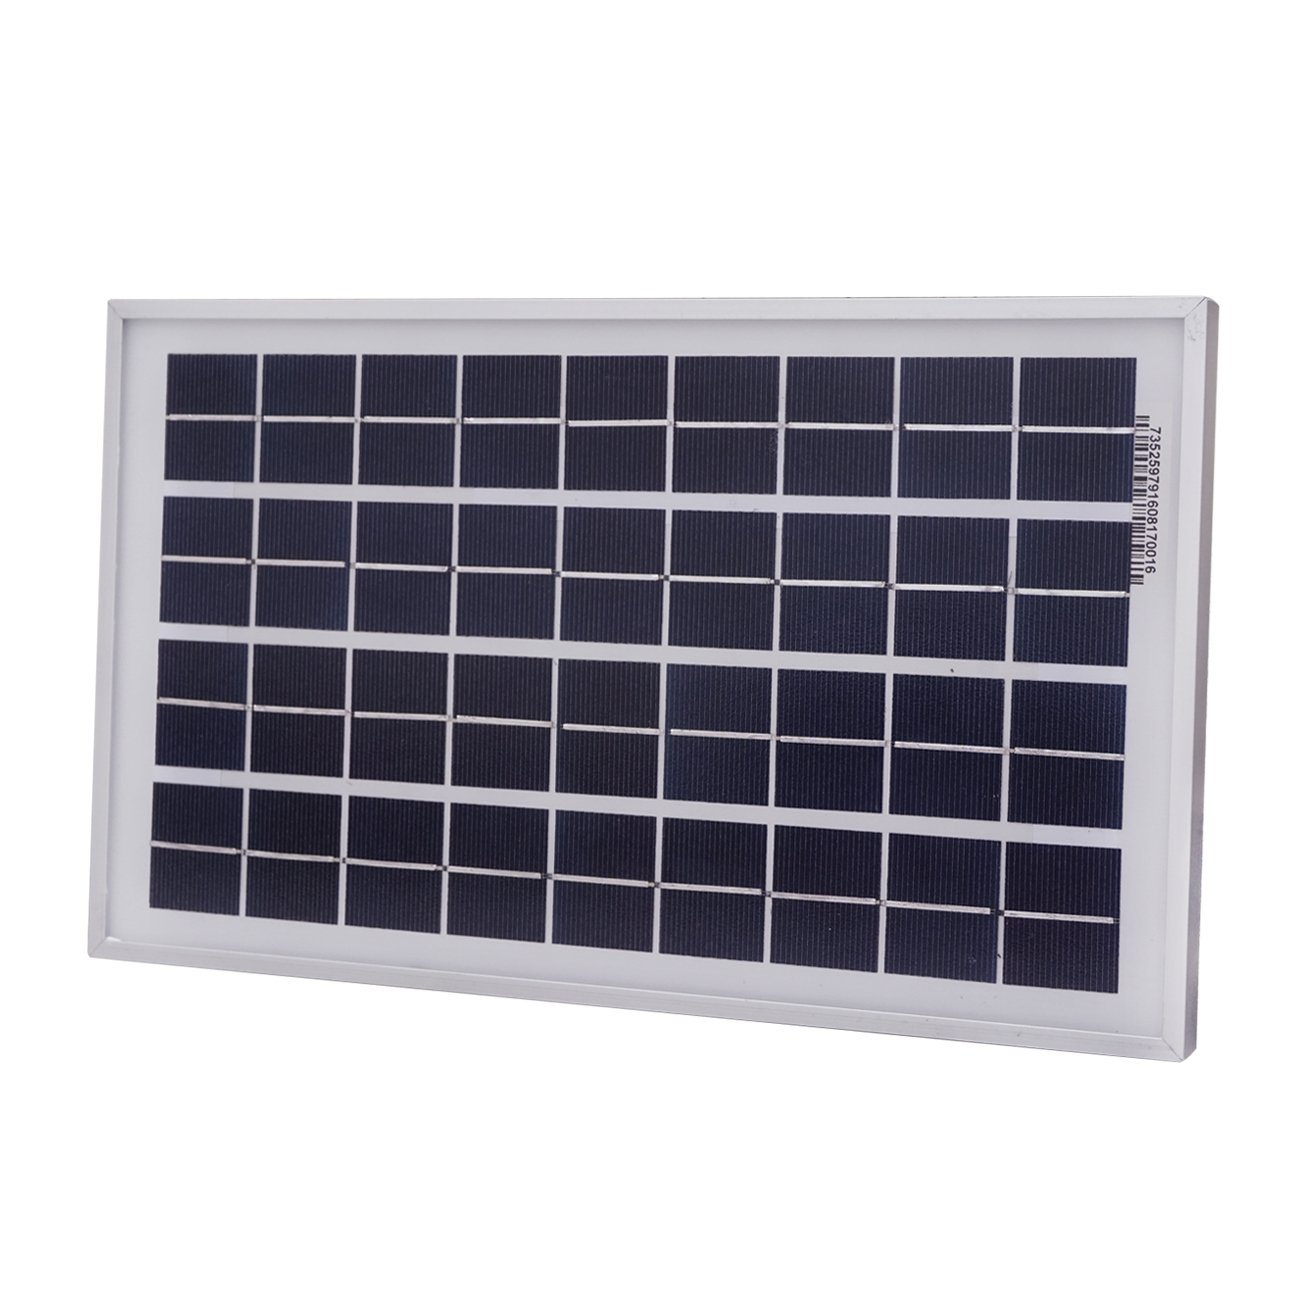 Amazon.com : ECO-WORTHY 10W Solar Panel 10 Watt 12 Volt Pv Solar Module, Solar  Cell Panel : Garden & Outdoor